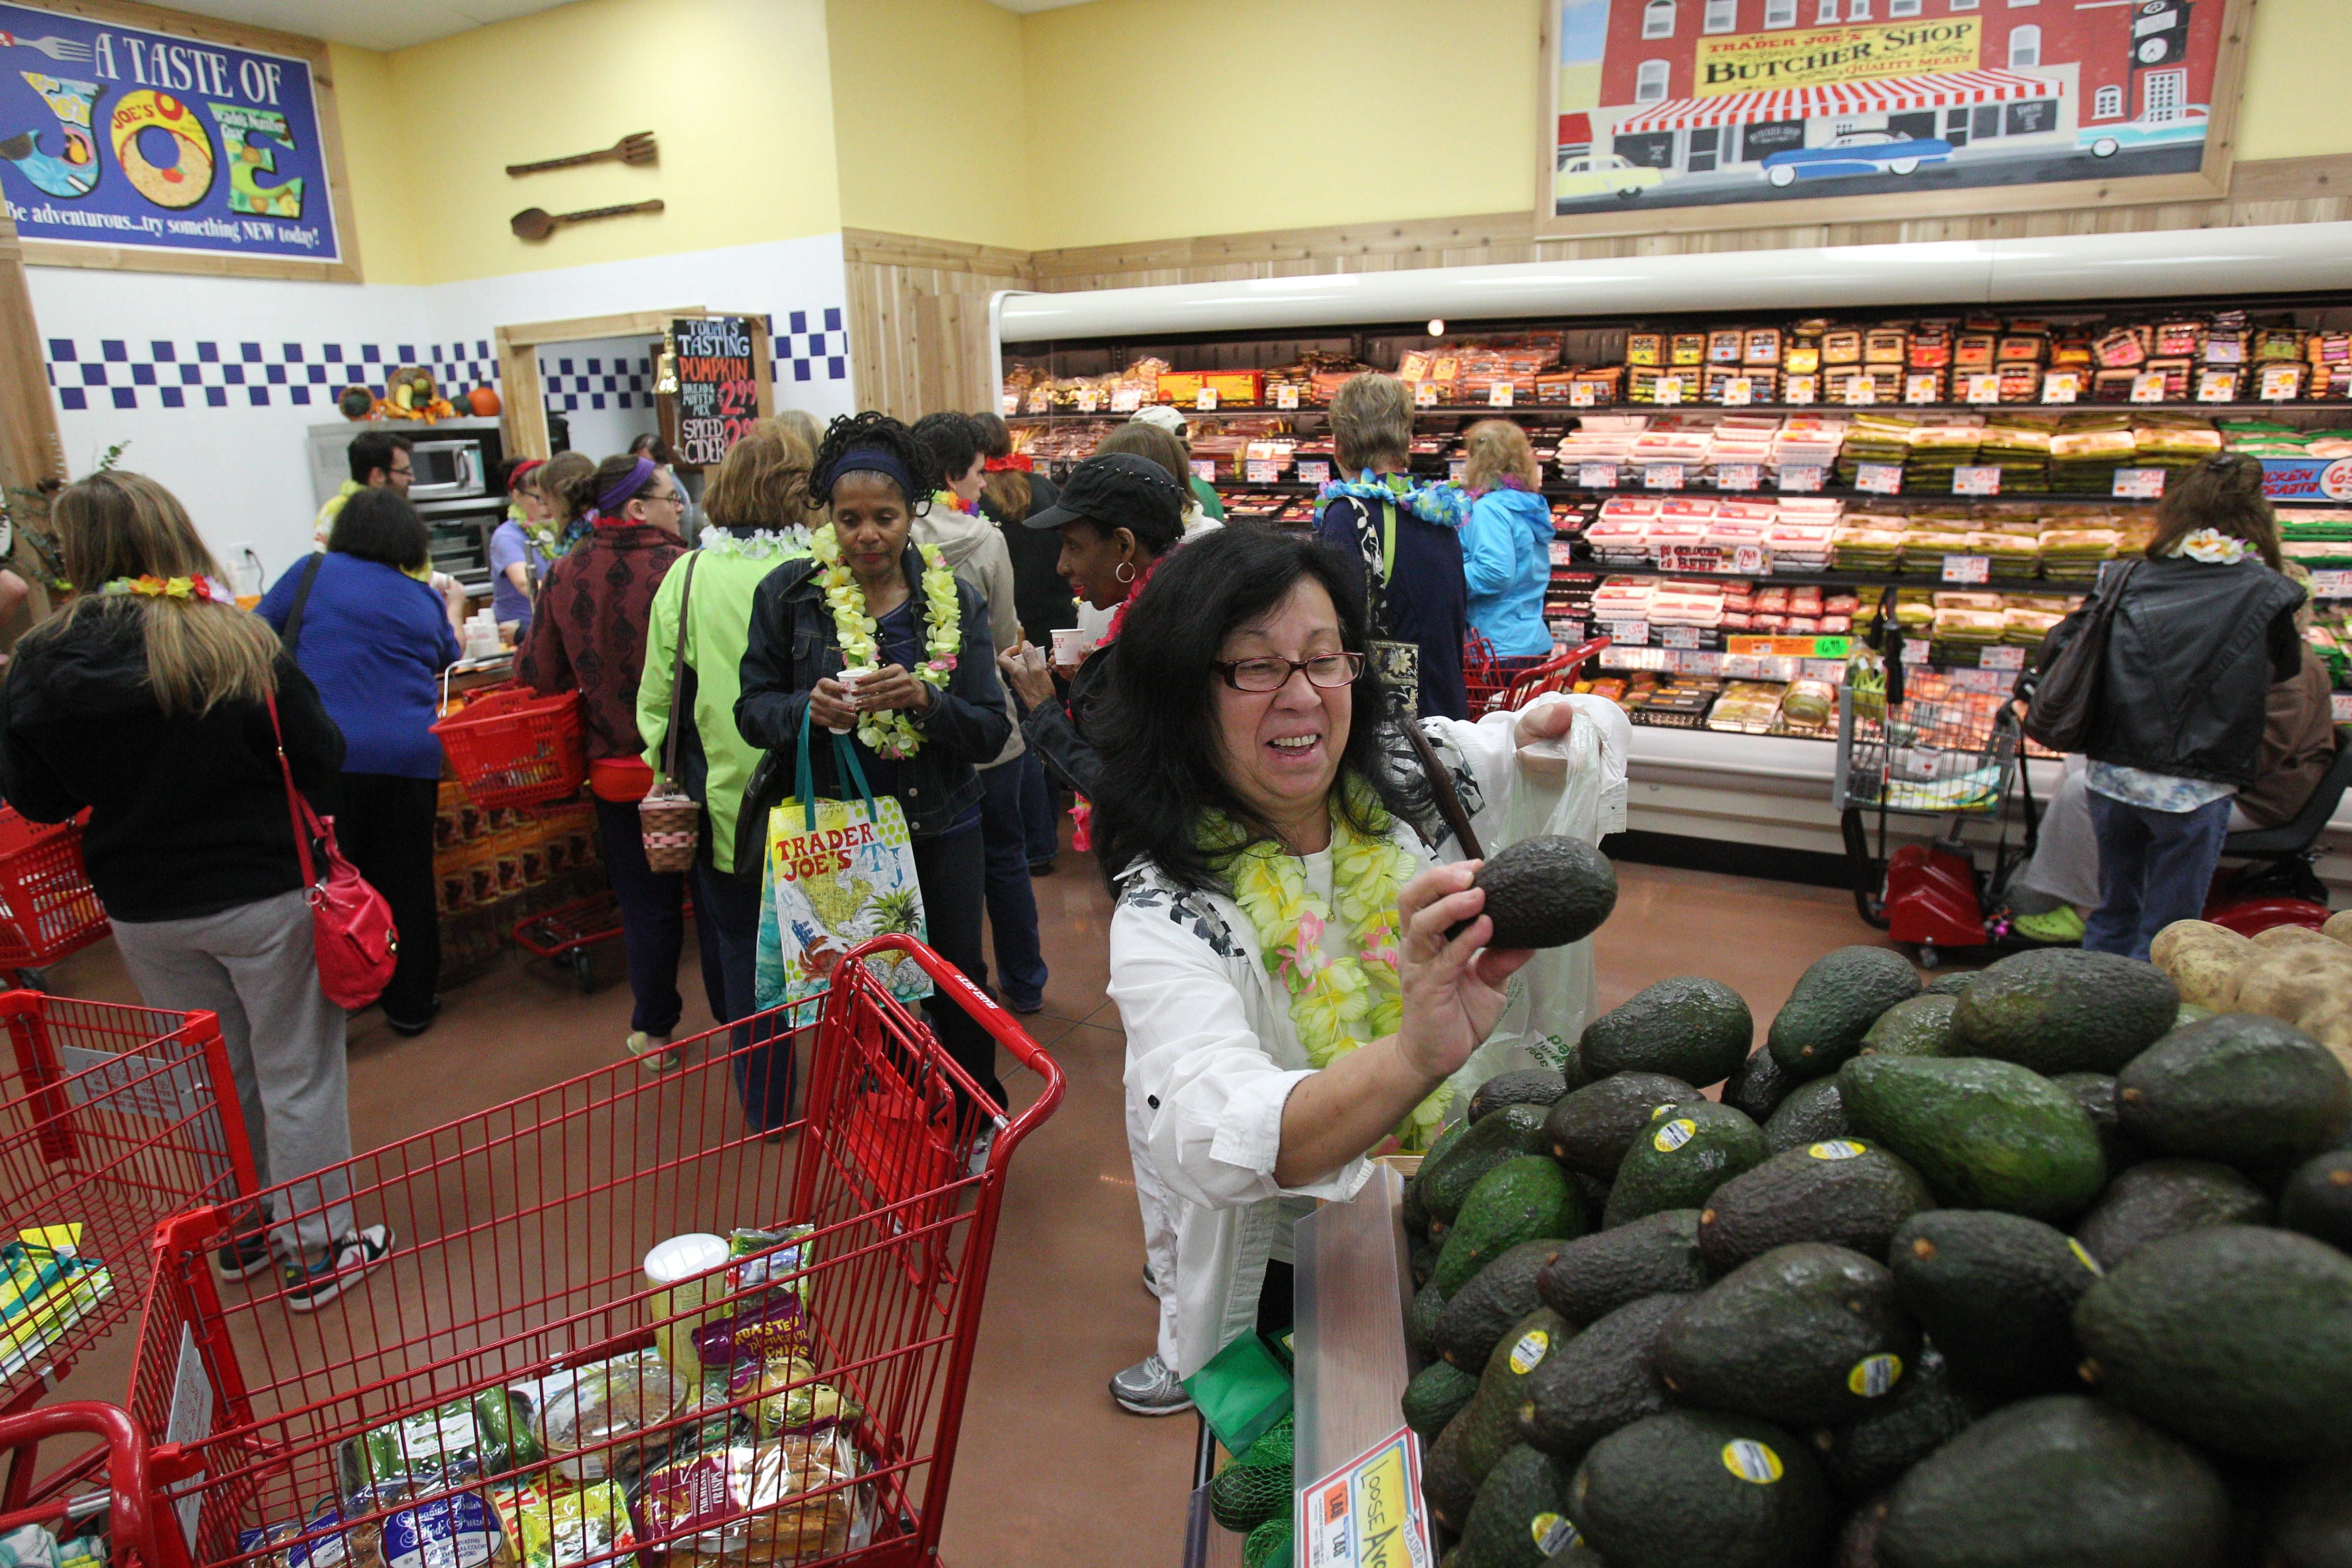 Kathy Weixlmann, top, of Niagara Falls picks out avocados at the opening of Trader Joe's Friday. She visited the chain's store in other cities and knew where to turn. The opening featured an outside performance by the Caribbean Extravaganza. Shoppers also were greeted with a lei and a shopping bag.